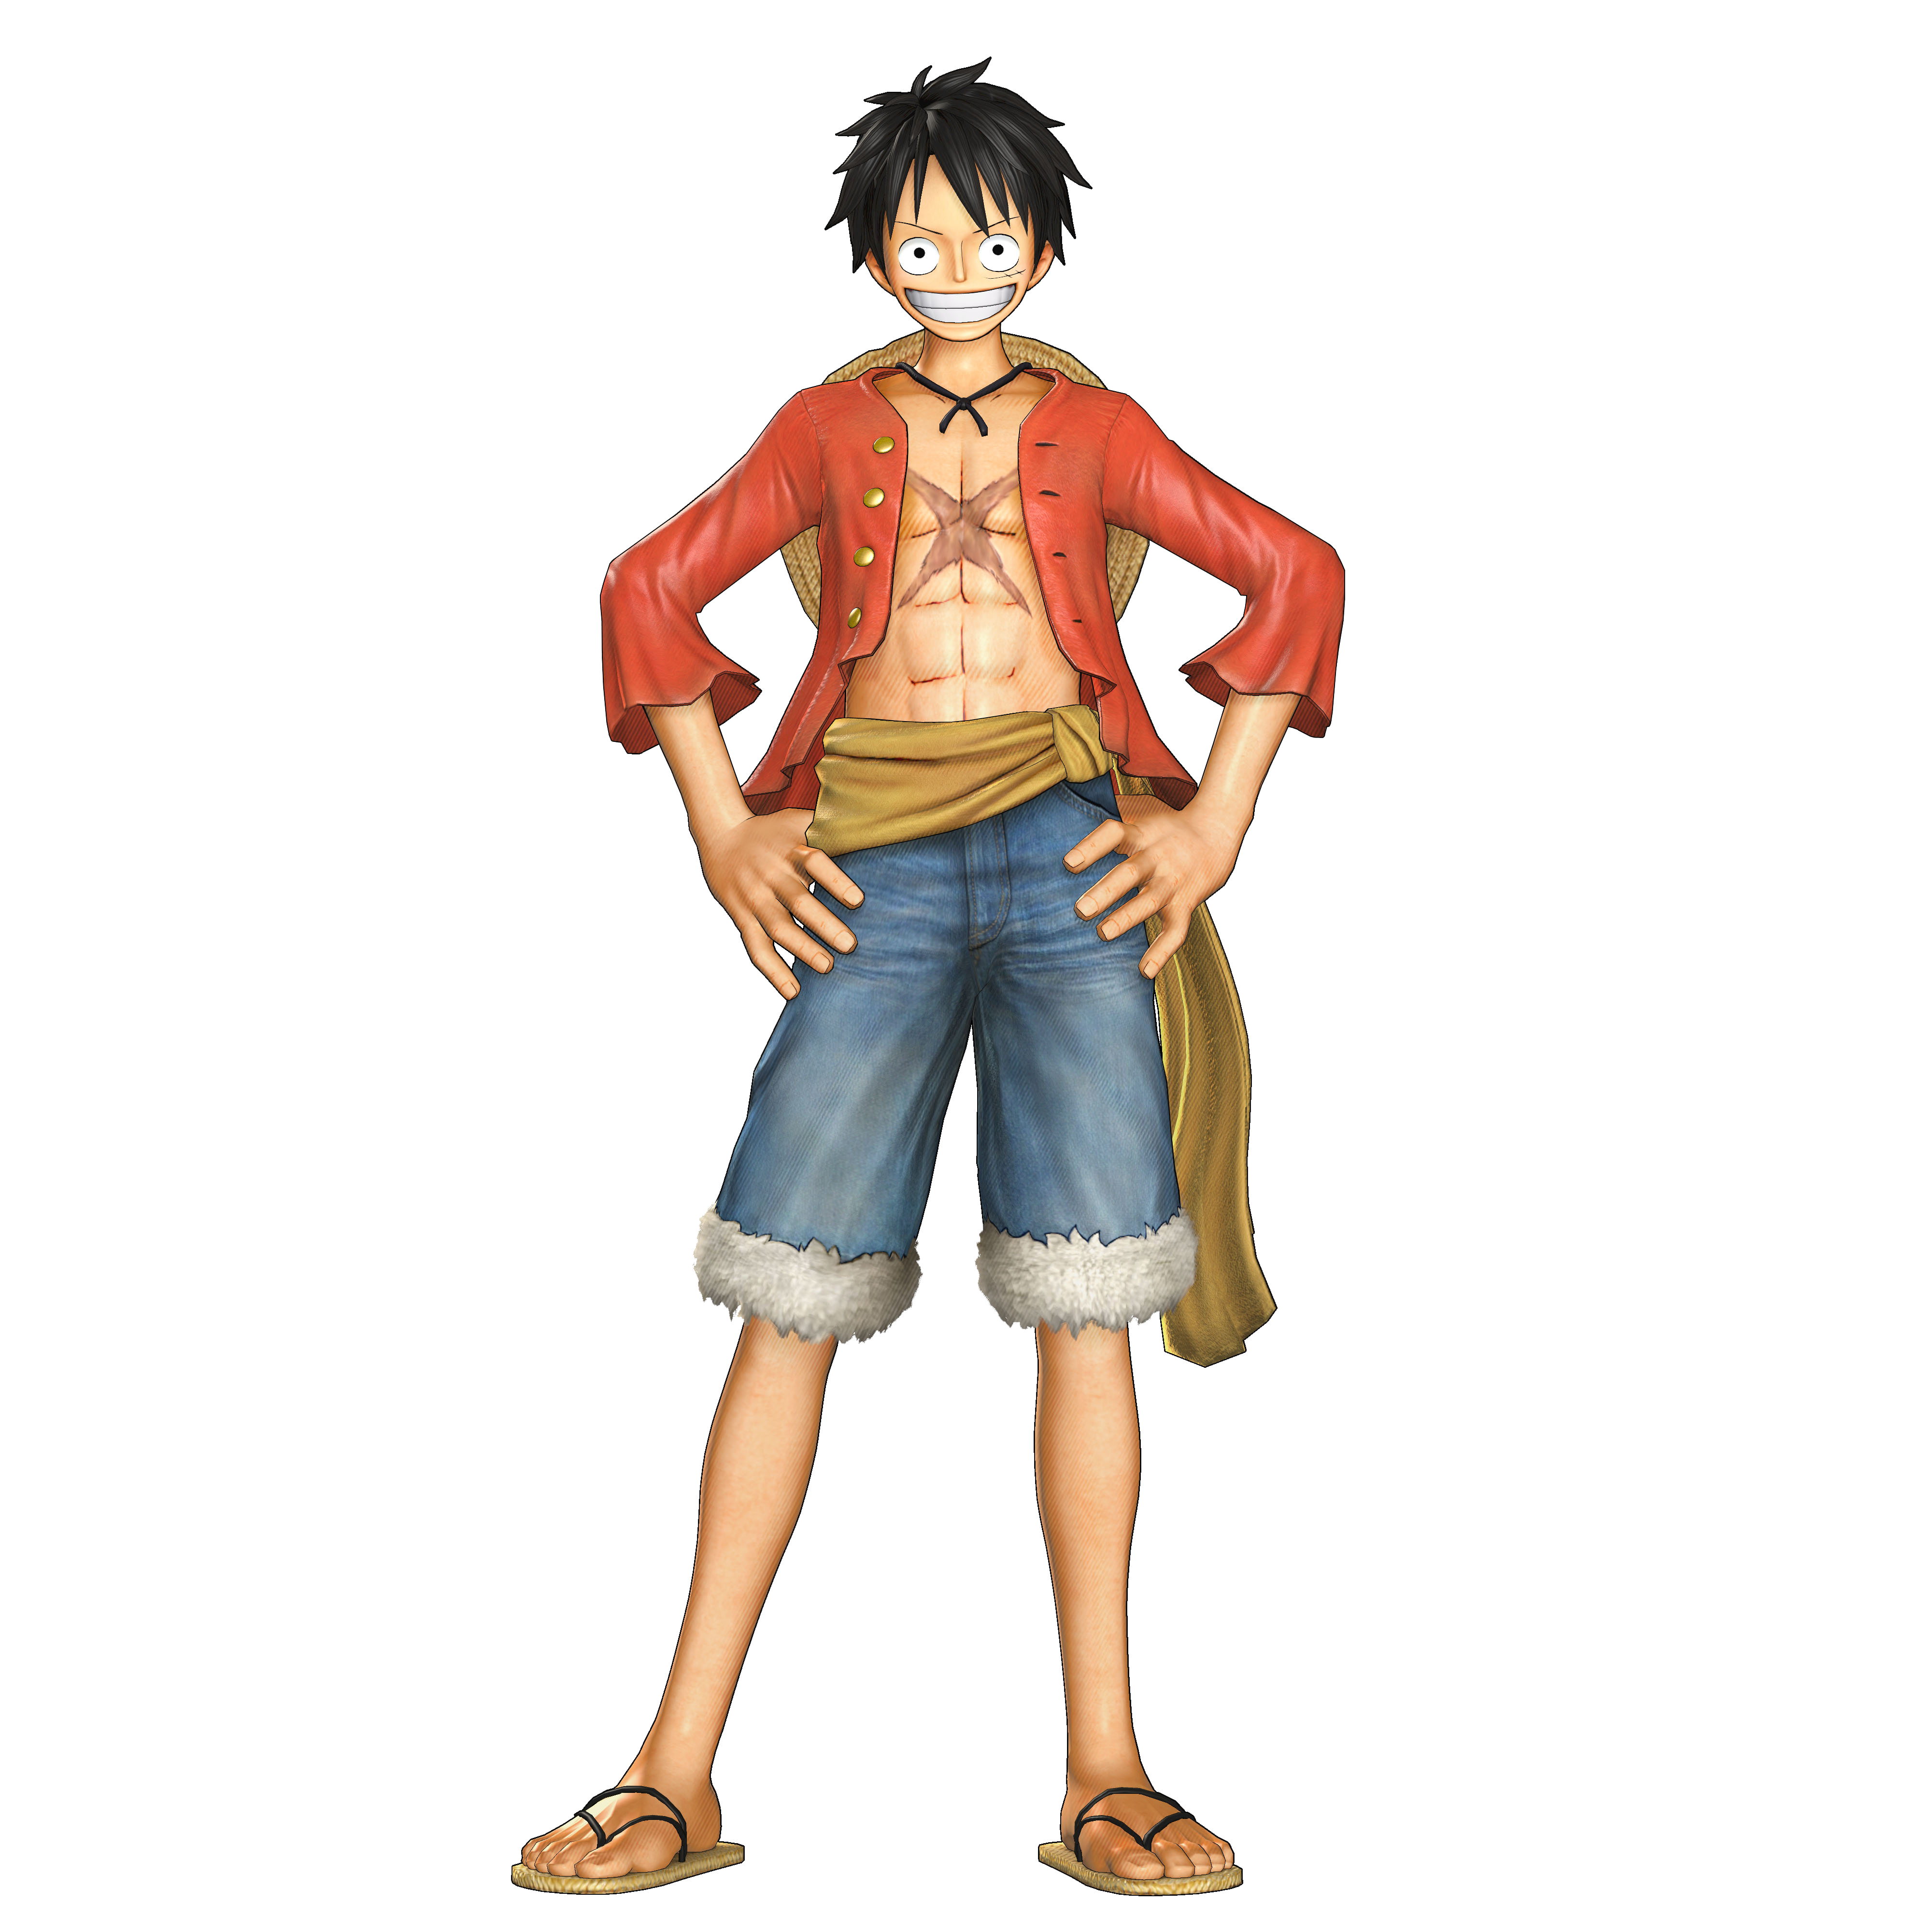 One Piece Png by bloomsama One Piece Png by bloomsama - One Piece PNG